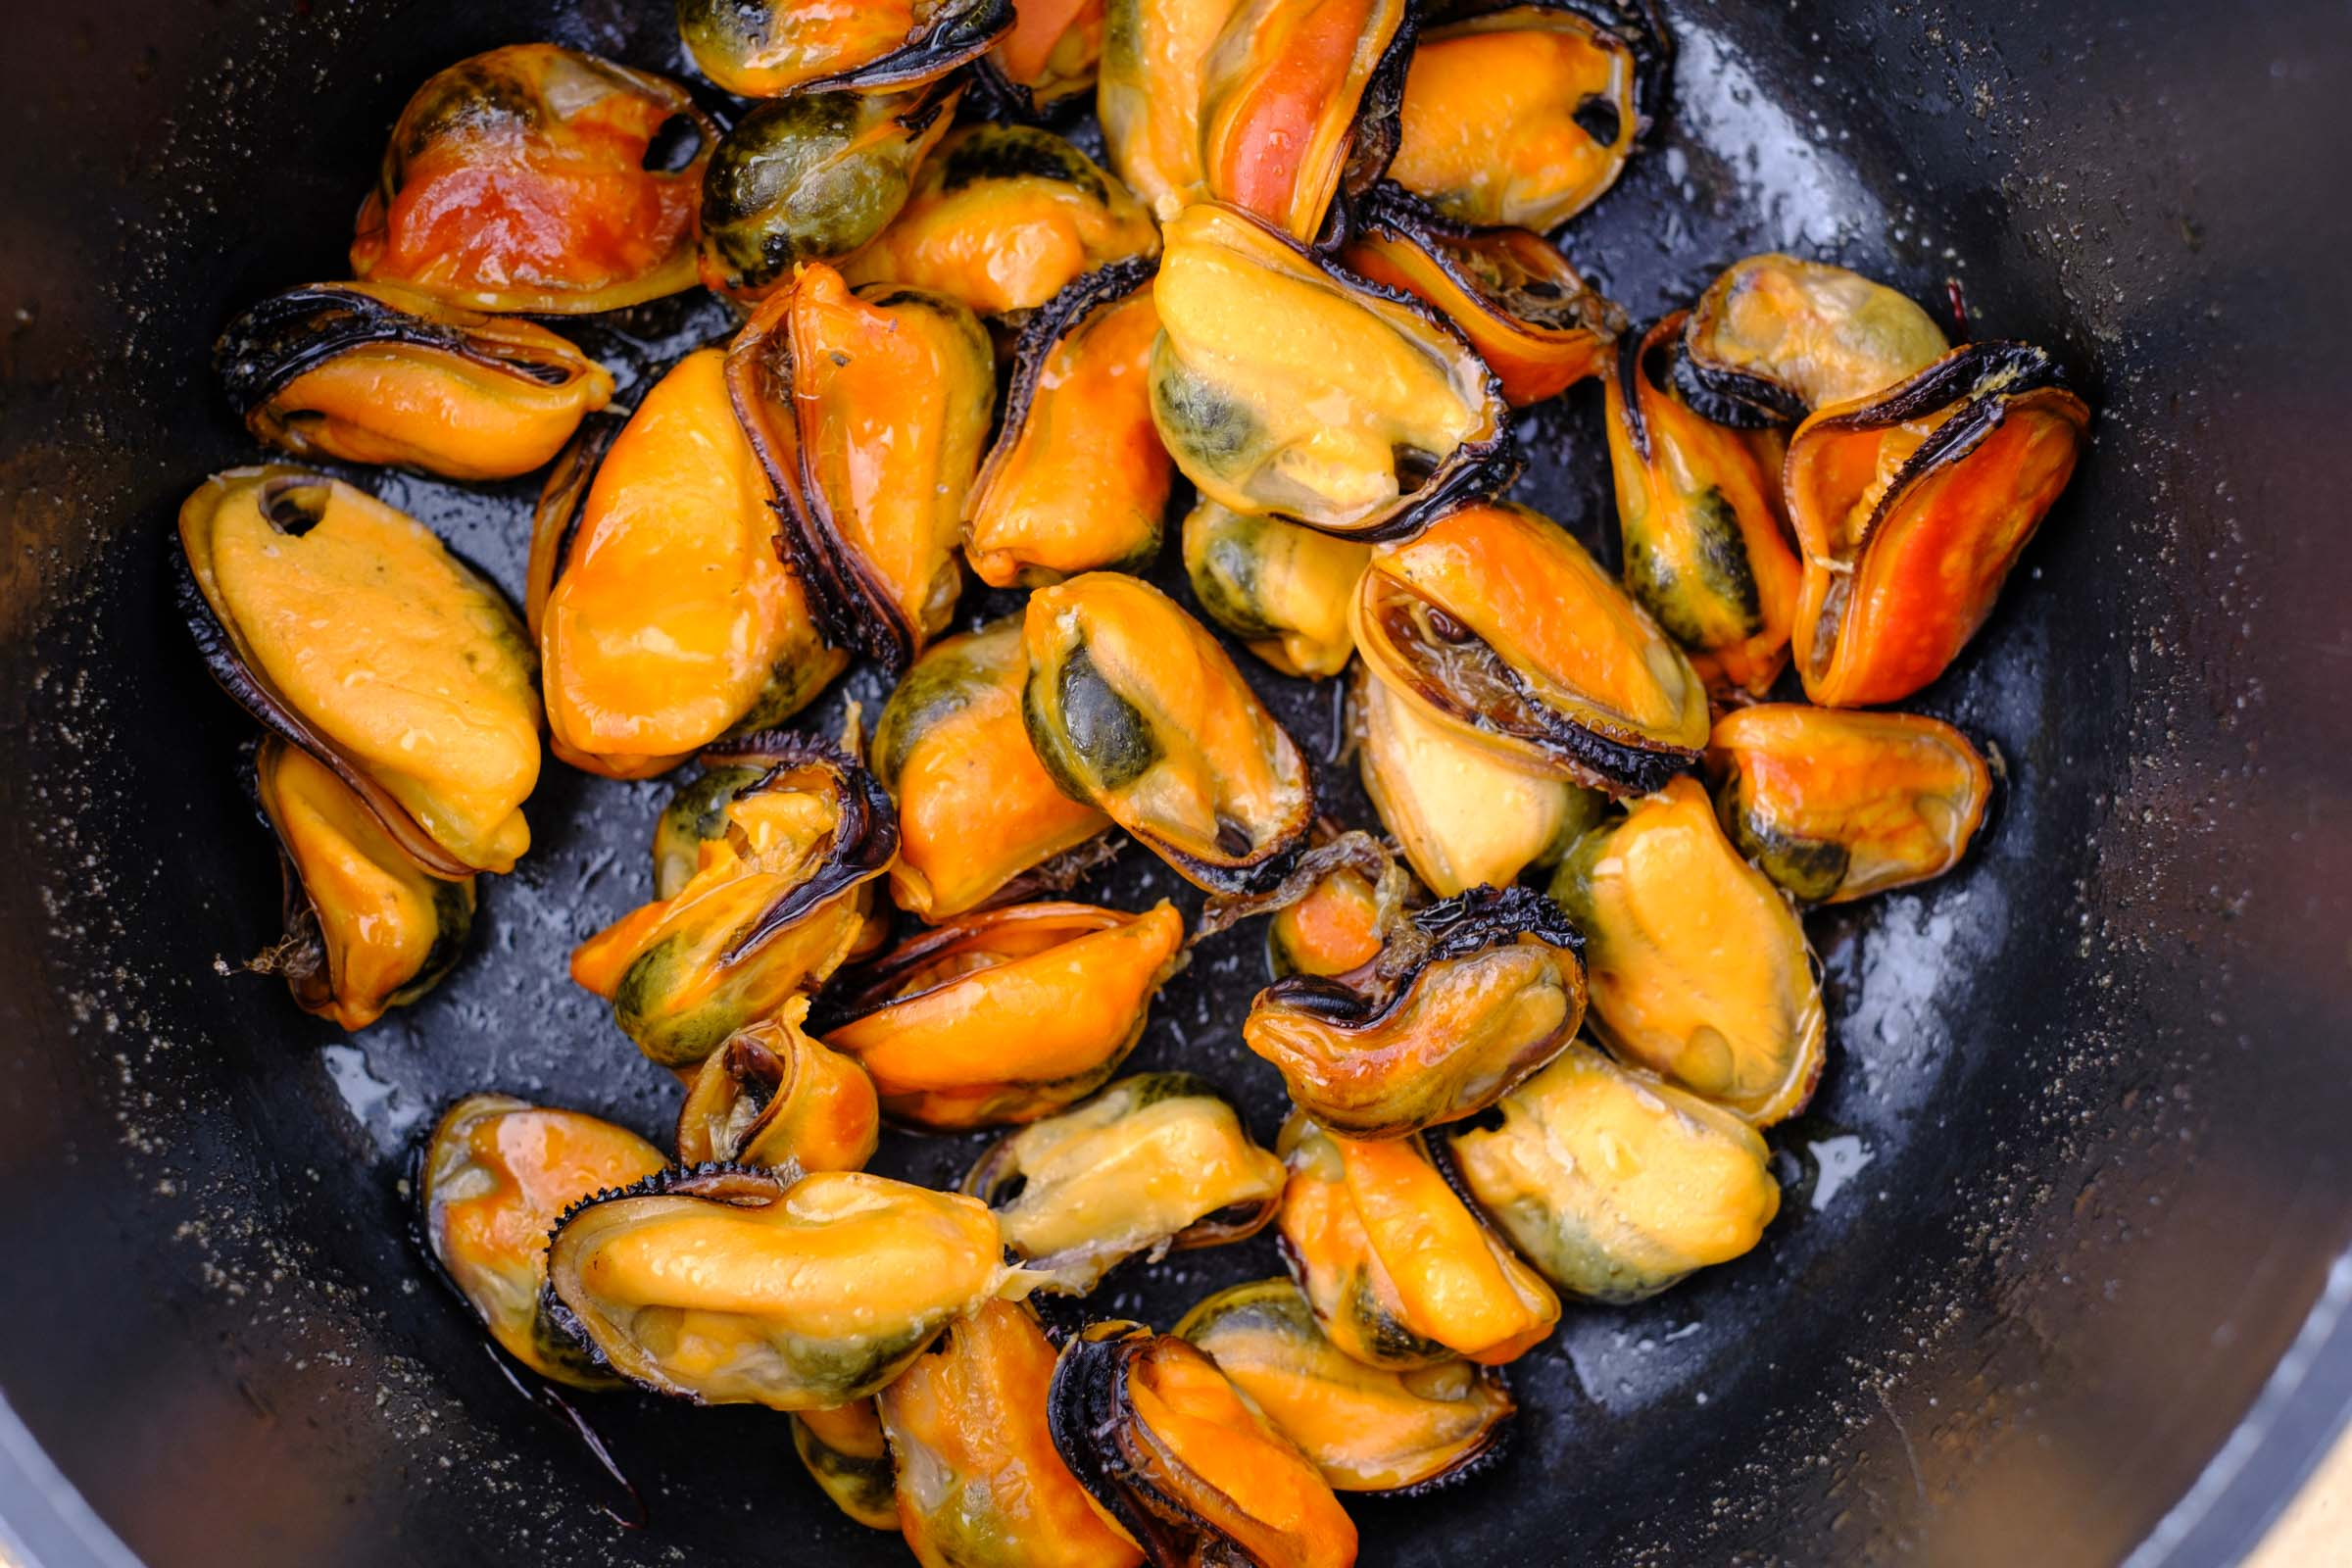 Mussels thrown